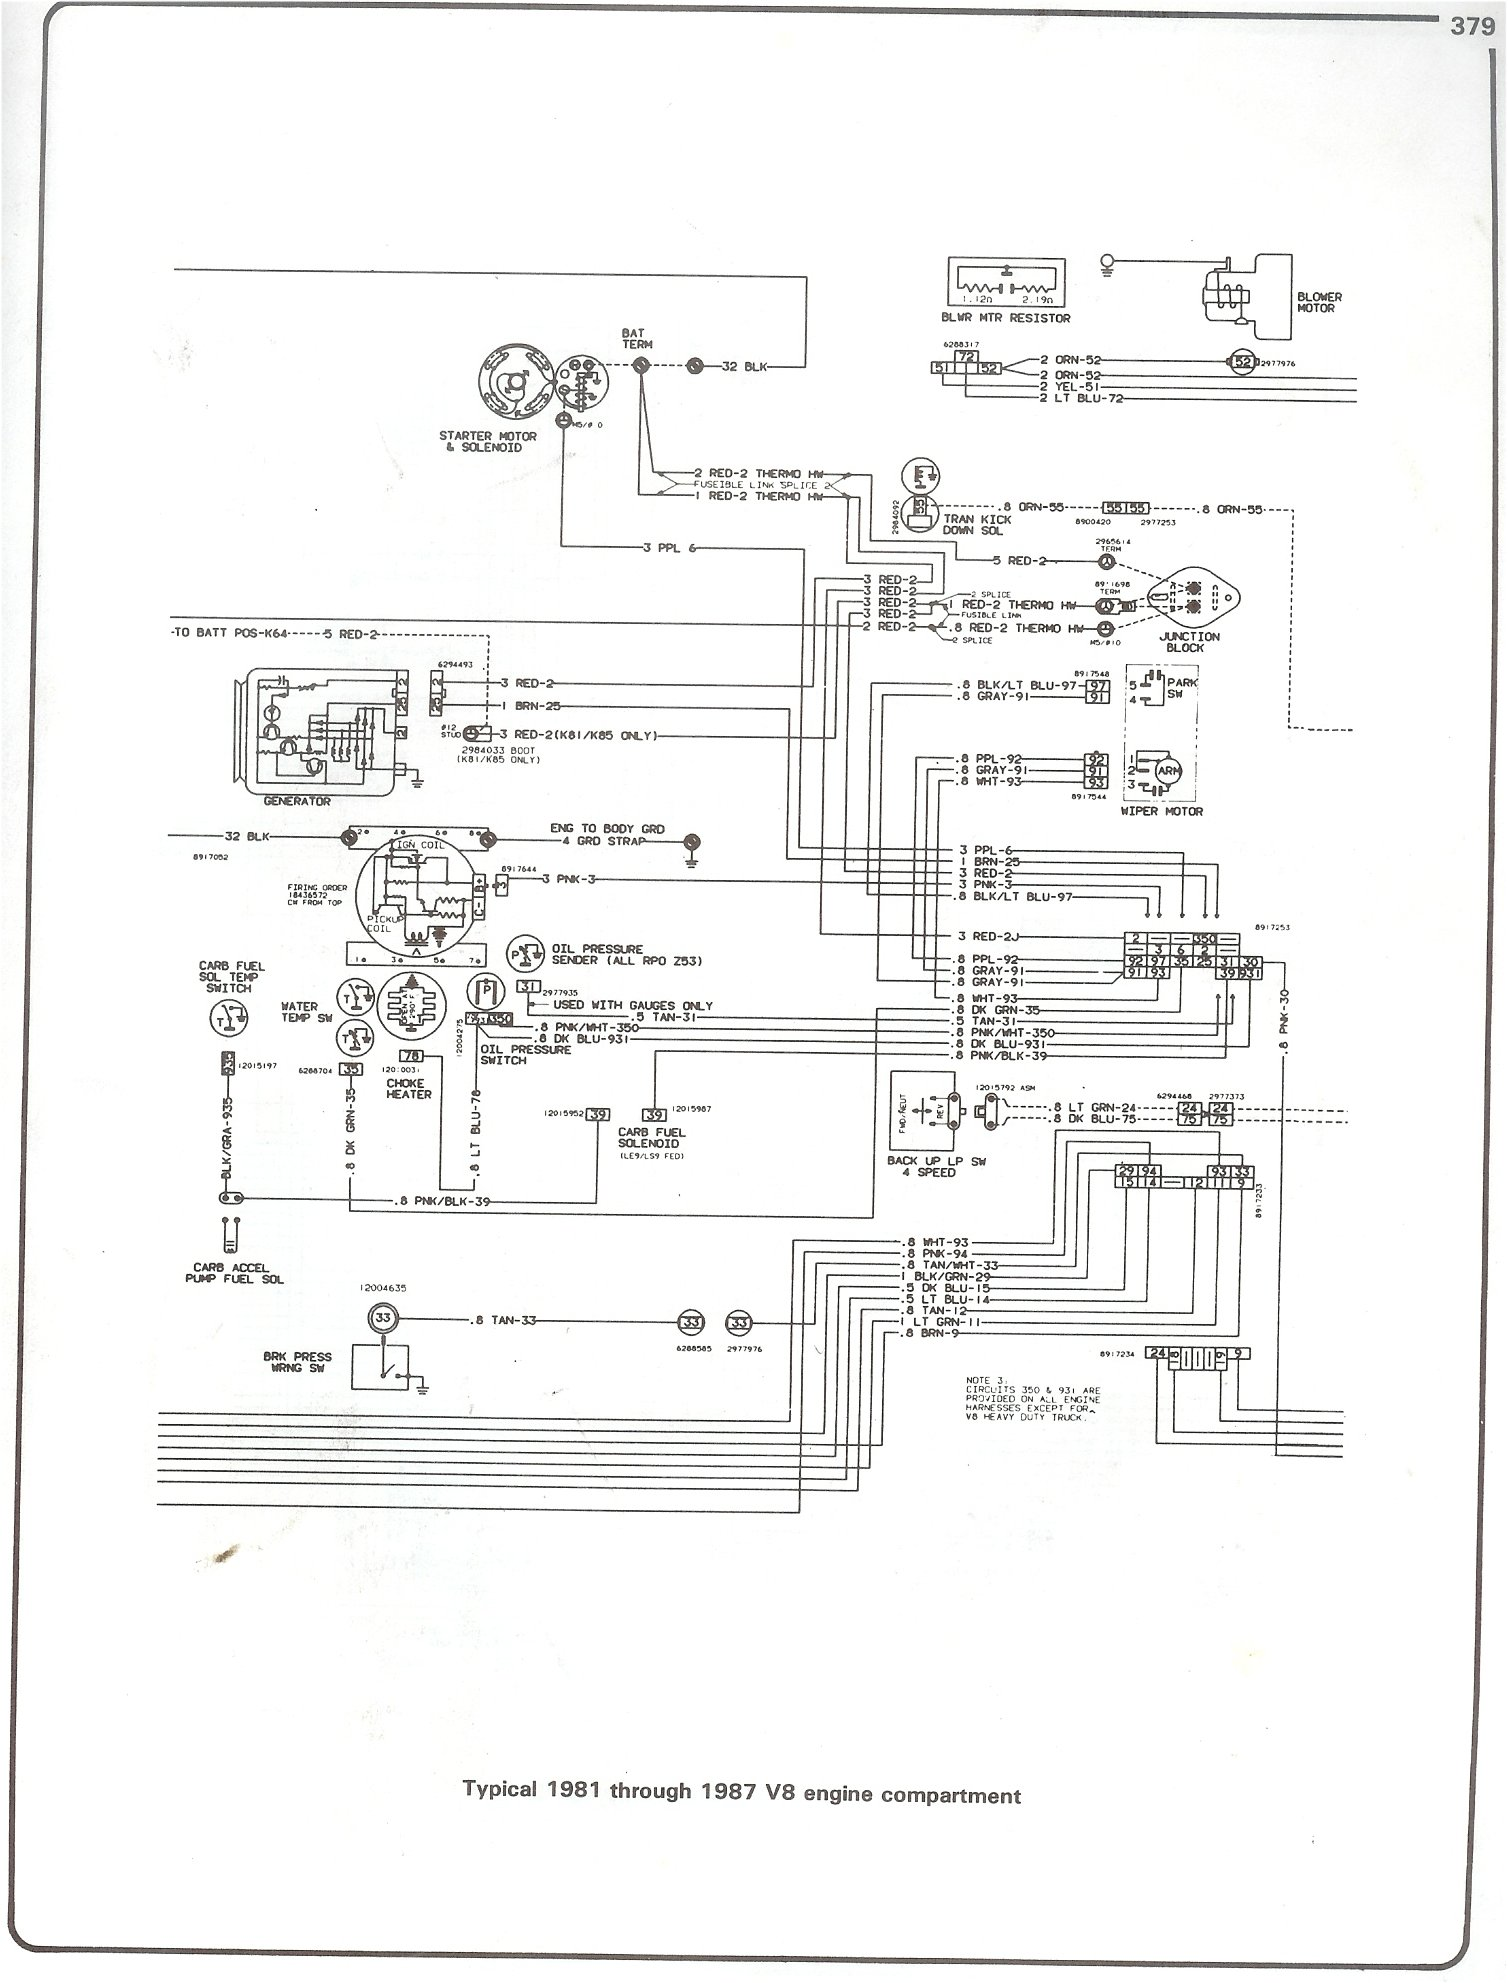 81 87_V8_engine complete 73 87 wiring diagrams 1990 suburban instrument cluster wiring diagram at crackthecode.co